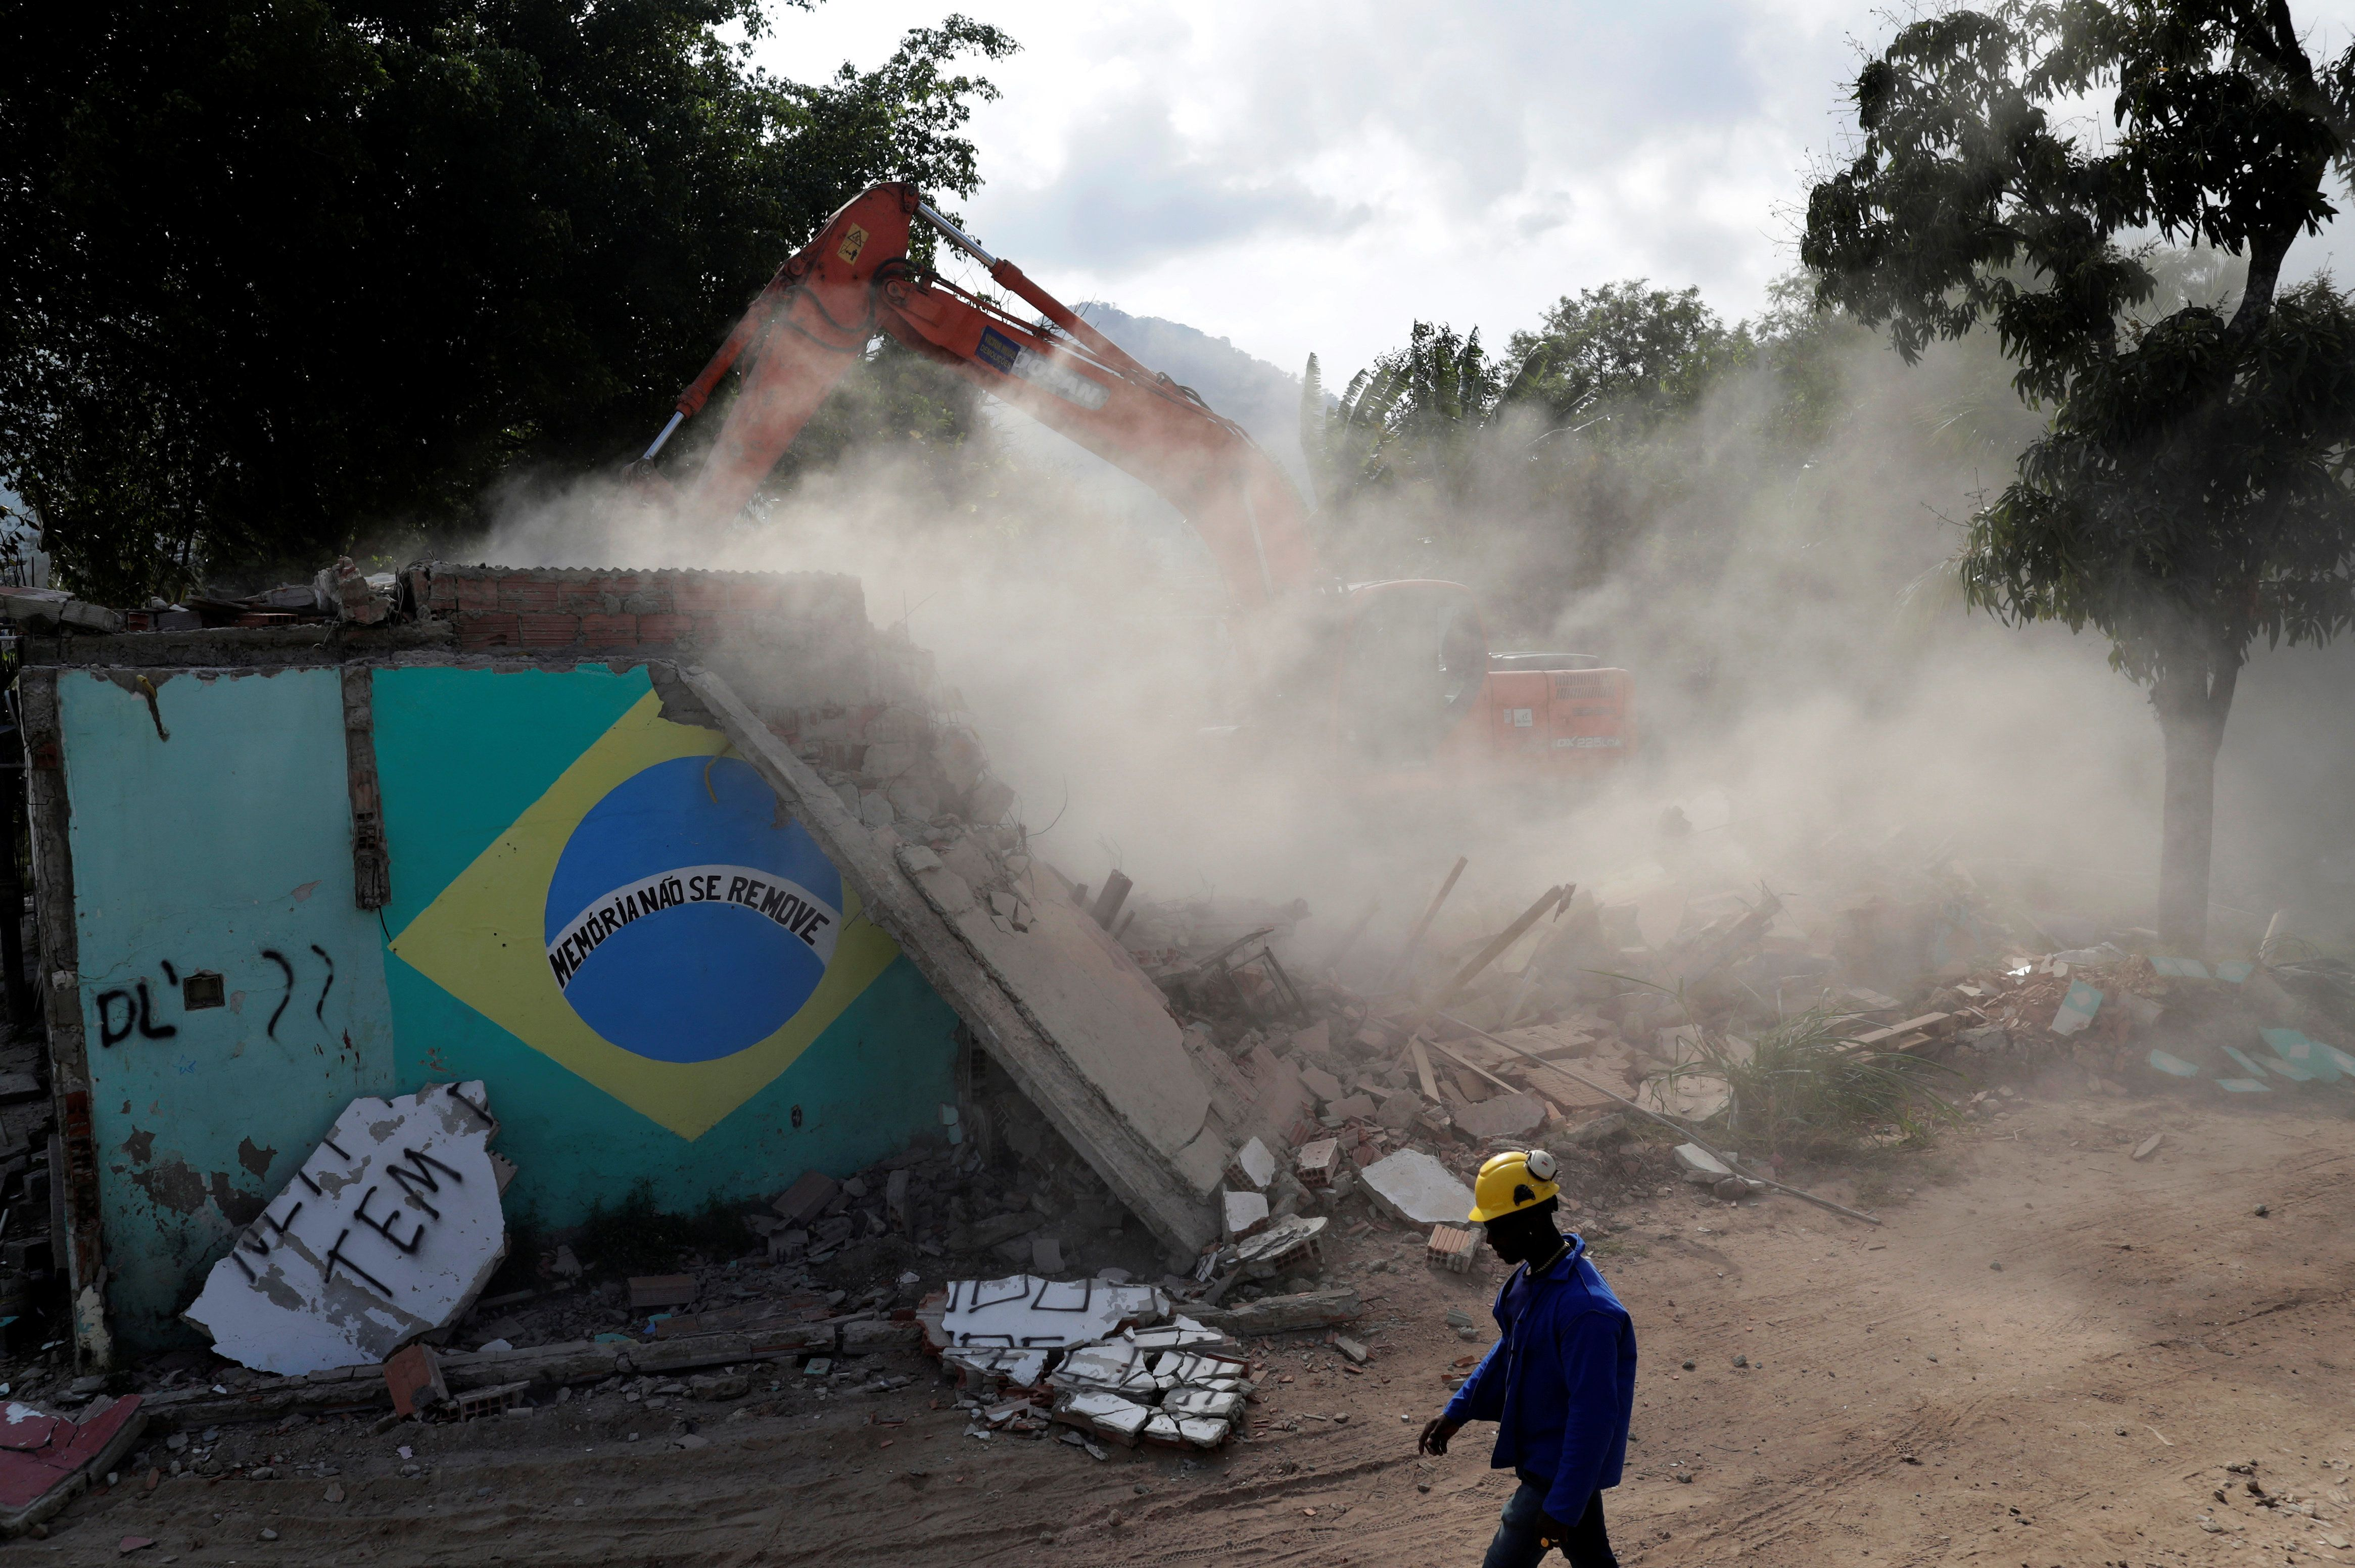 "The house of Carlos Augusto and Sandra Regina (not pictured) who have lived in Vila Autodromo slum for 20 years with their children, is demolished after the family moved to one of the twenty houses built for the residents who refused to leave the community, in Rio de Janeiro, Brazil, August 2, 2016. Picture taken August 2, 2016. REUTERS/Ricardo Moraes      SEARCH ""VILA AUTODROMO"" FOR THIS STORY. SEARCH ""THE WIDER IMAGE"" FOR ALL STORIES     TPX IMAGES OF THE DAY"